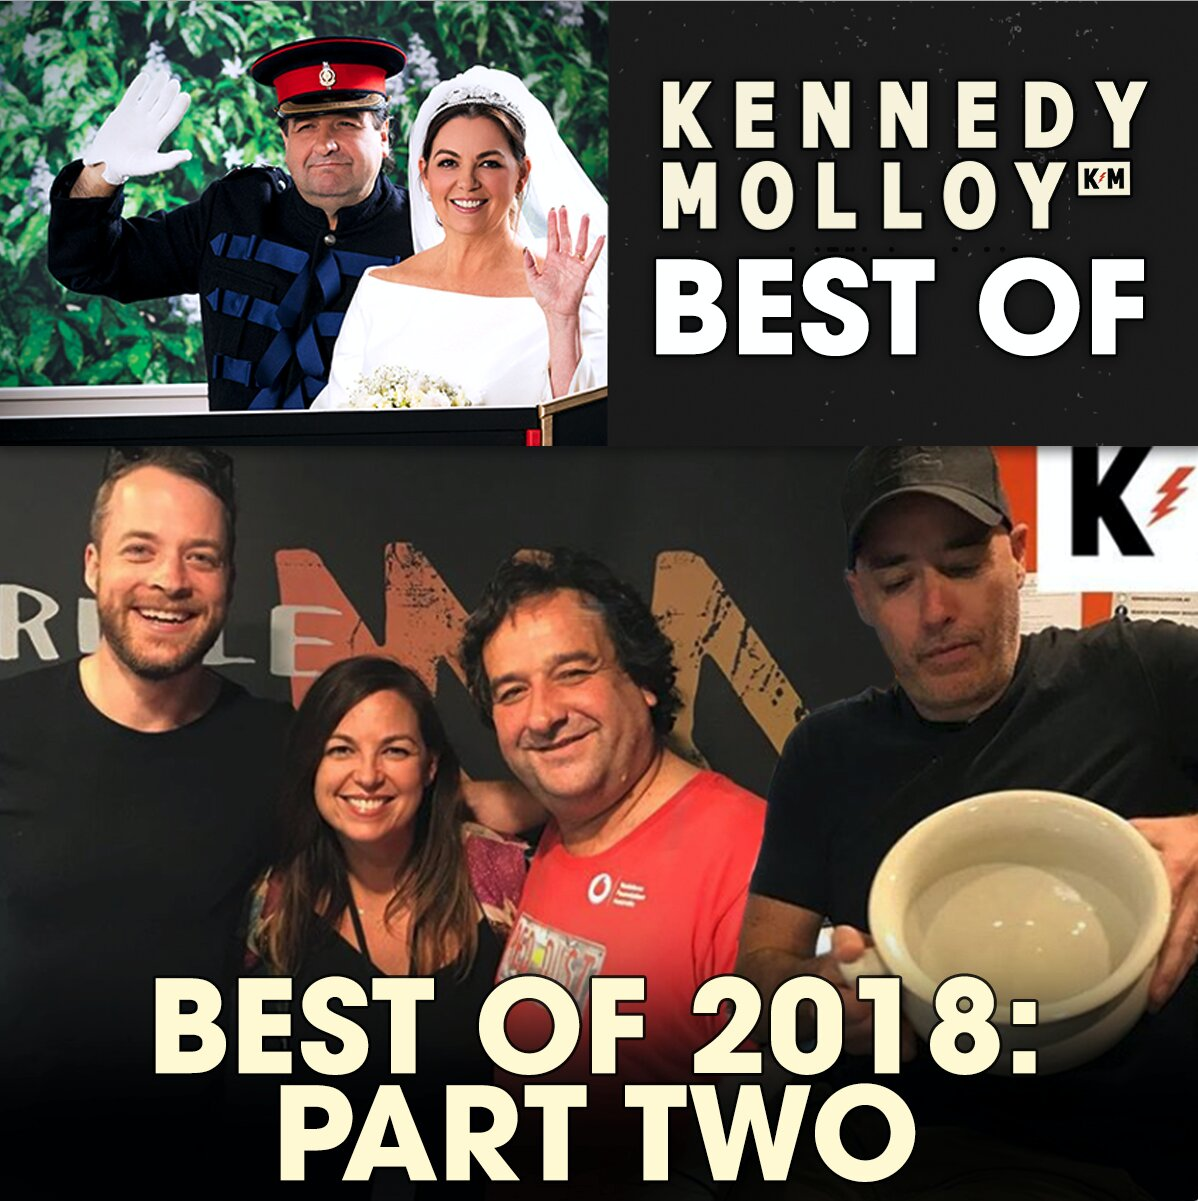 Kennedy Molloy's Best Of 2018: Part 2